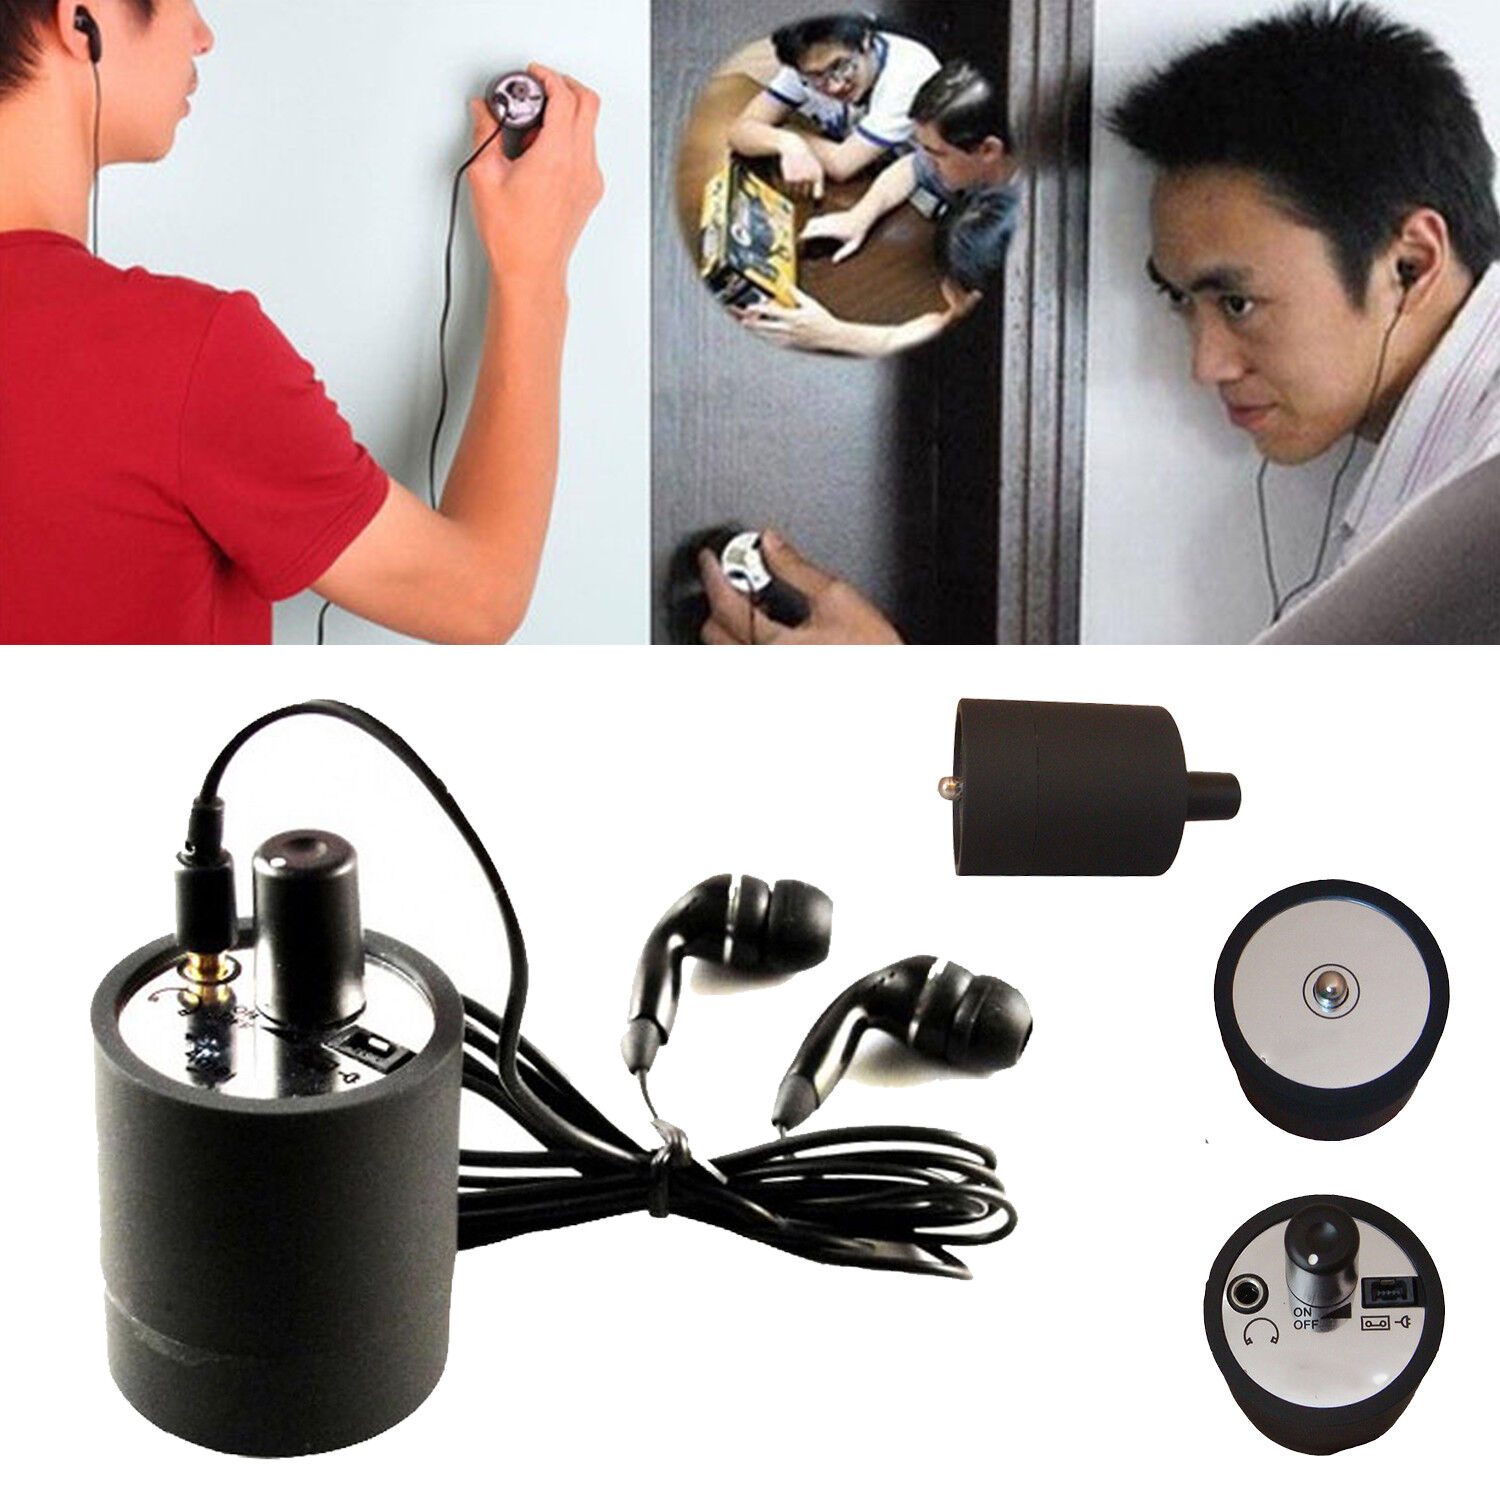 Ear Listen Through Wall Device SPY Monitor Bug Eavesdropping Microphone Voice